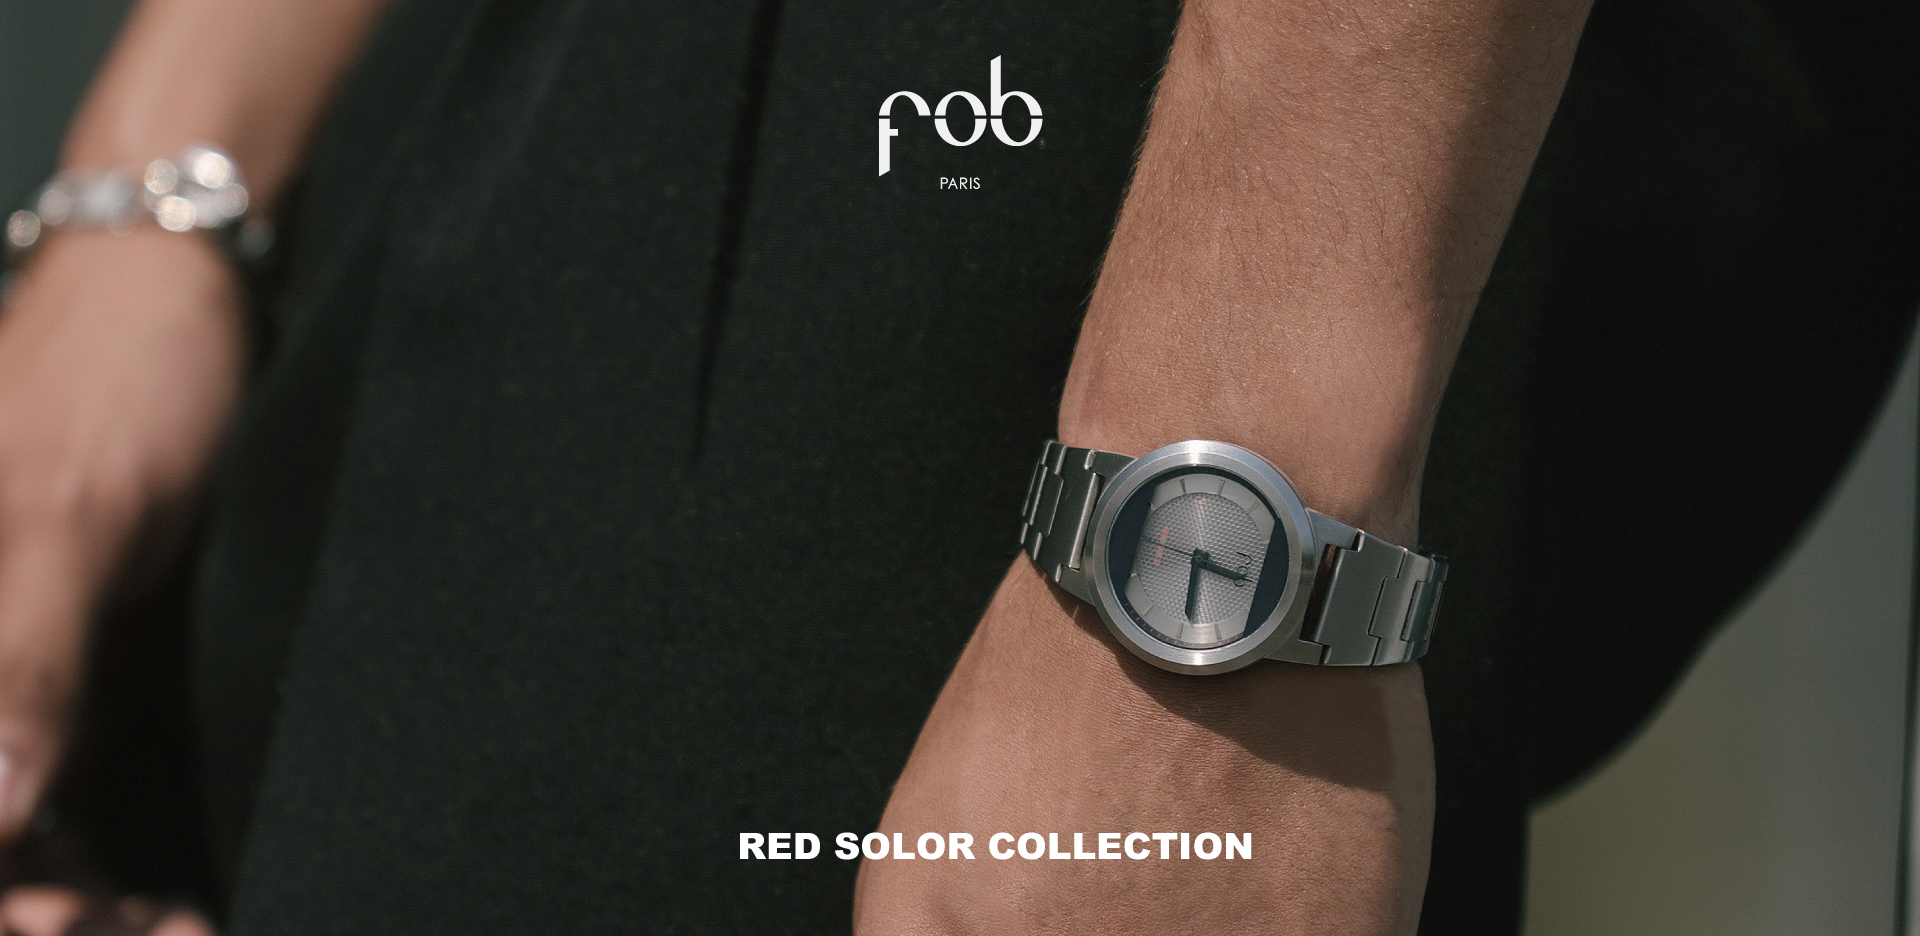 fob paris red solar collection